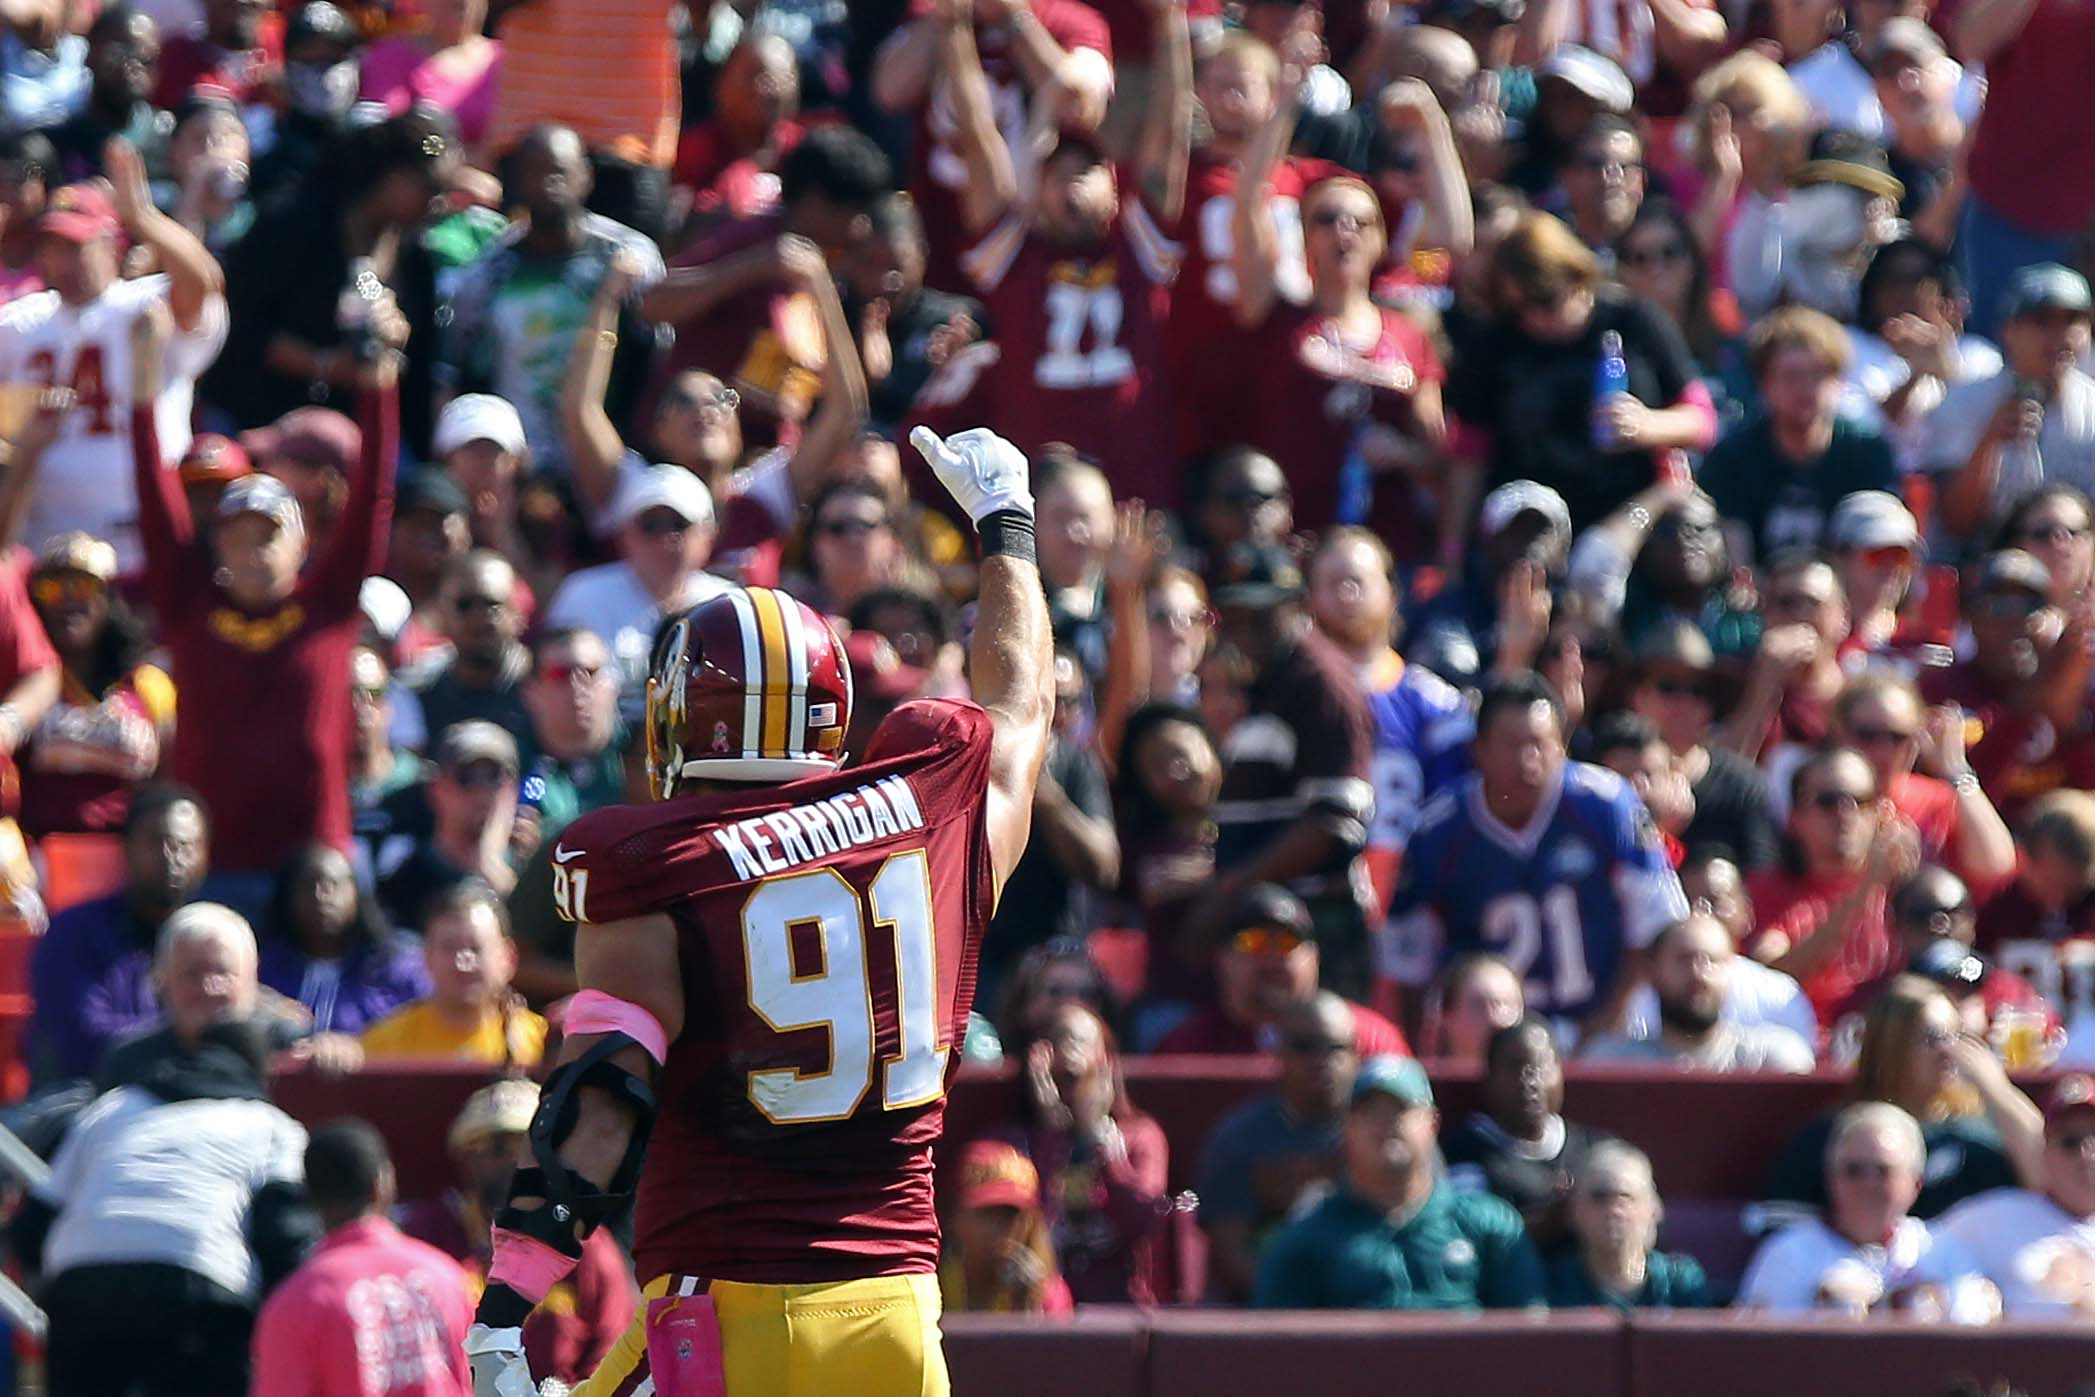 Ryan Kerrigan Undergoes Elbow Surgery